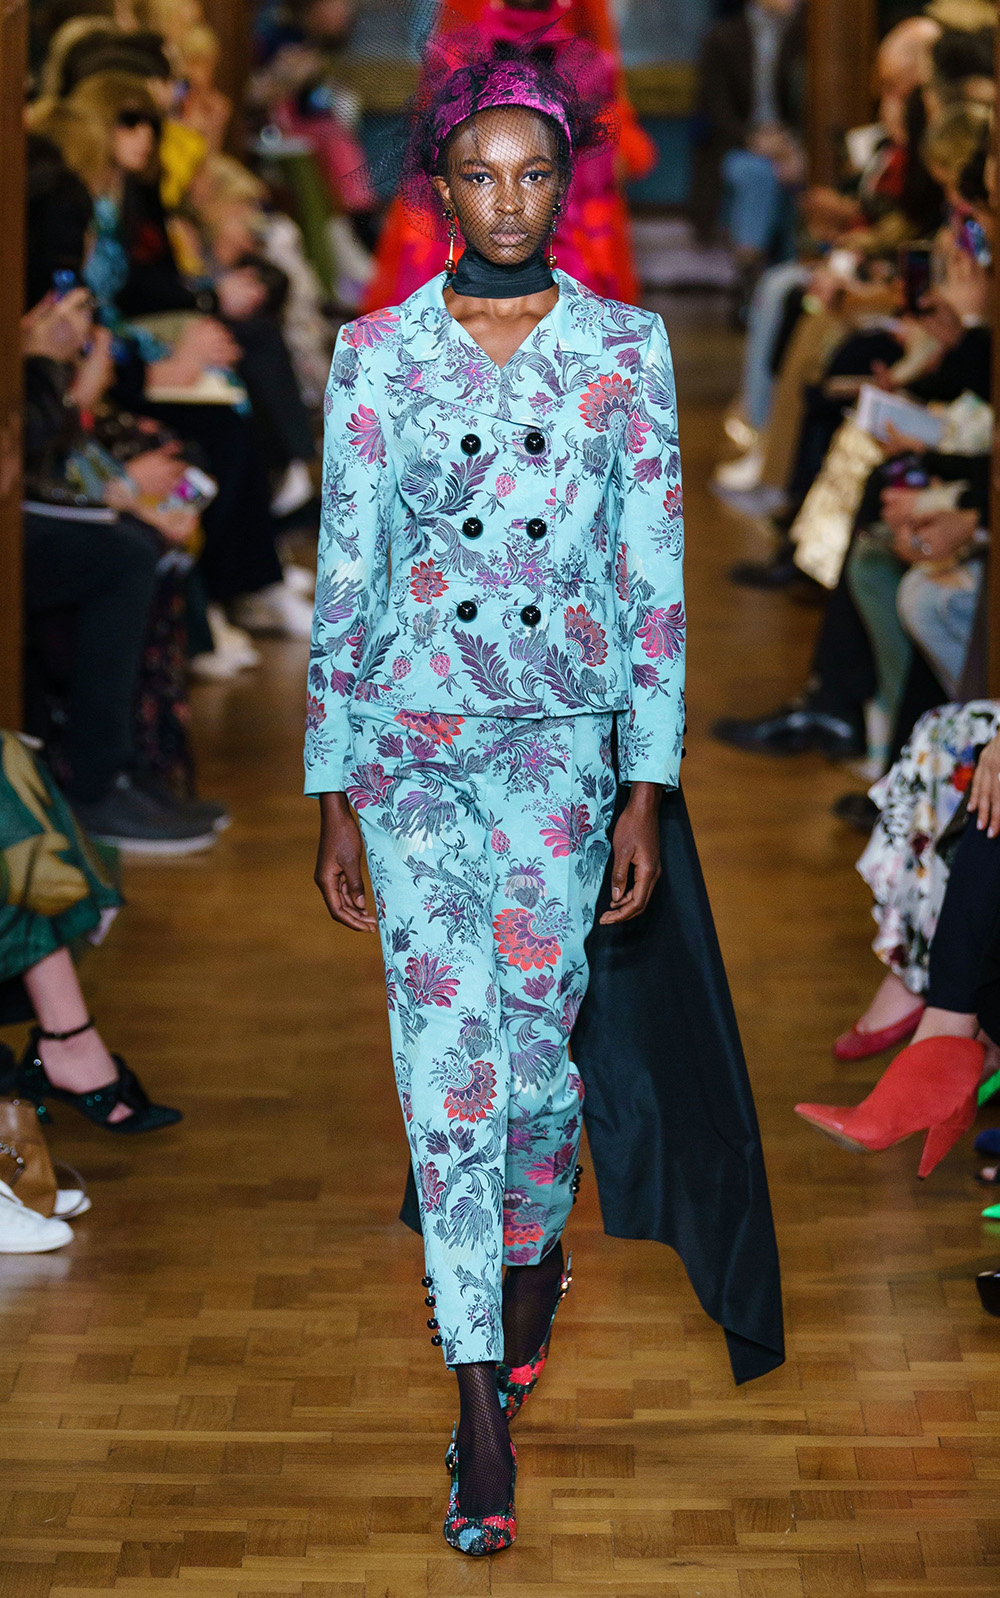 Best London Fashion Week Looks Off the Fall 2019 Runways I Erdem Printed Pantsuit #FashionWeek #LFW #DesignerFashion